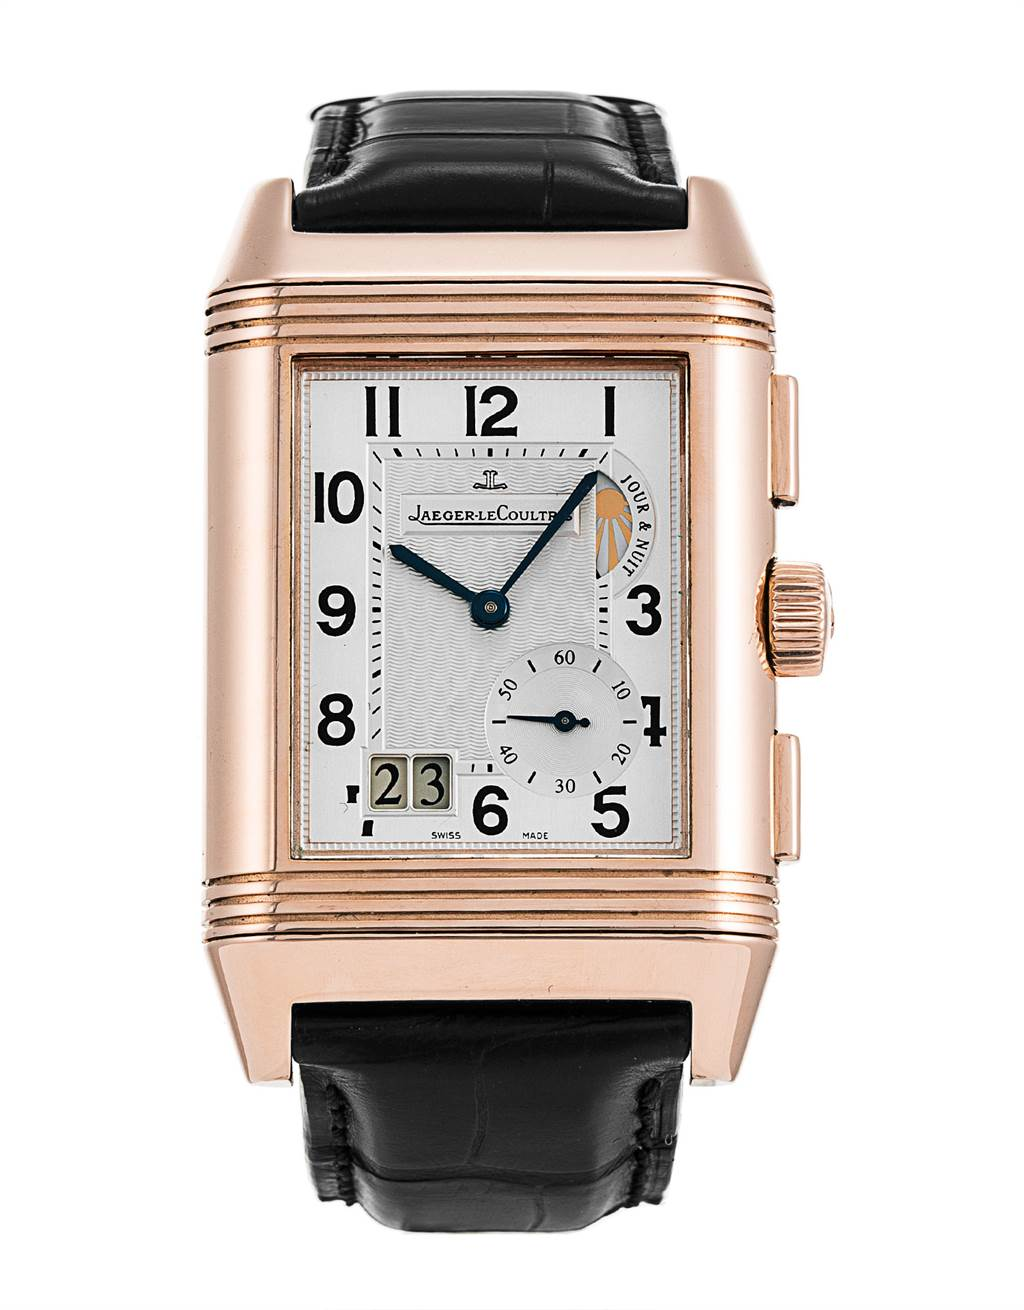 Jaeger LeCoultre Reverso Grande GMT Rose Gold Watch 240.2.18 Q3022420 SwissWatchExpo